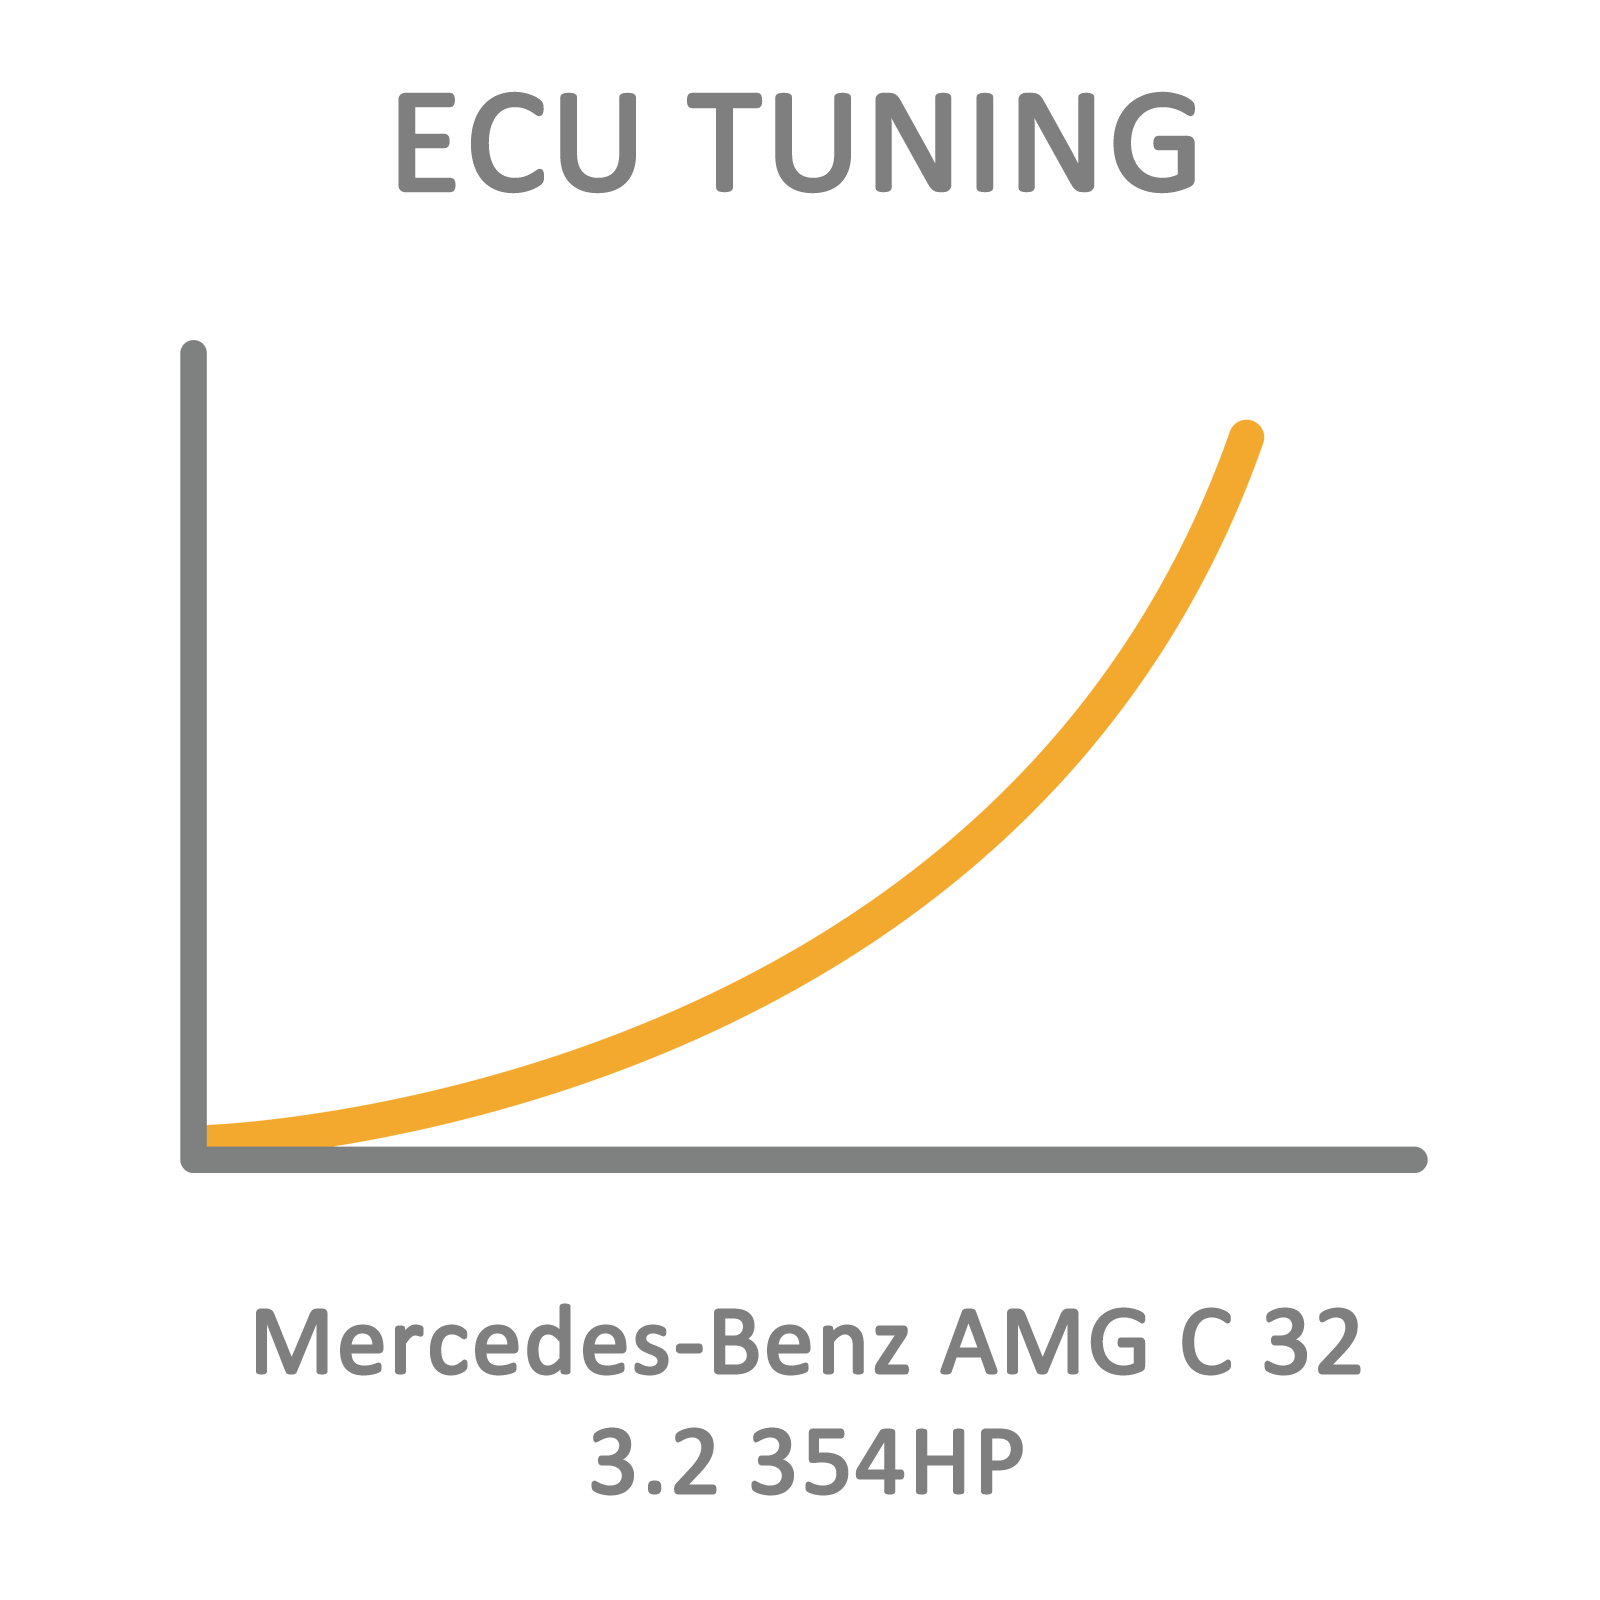 Mercedes-Benz AMG C 32 3.2 354HP ECU Tuning Remapping